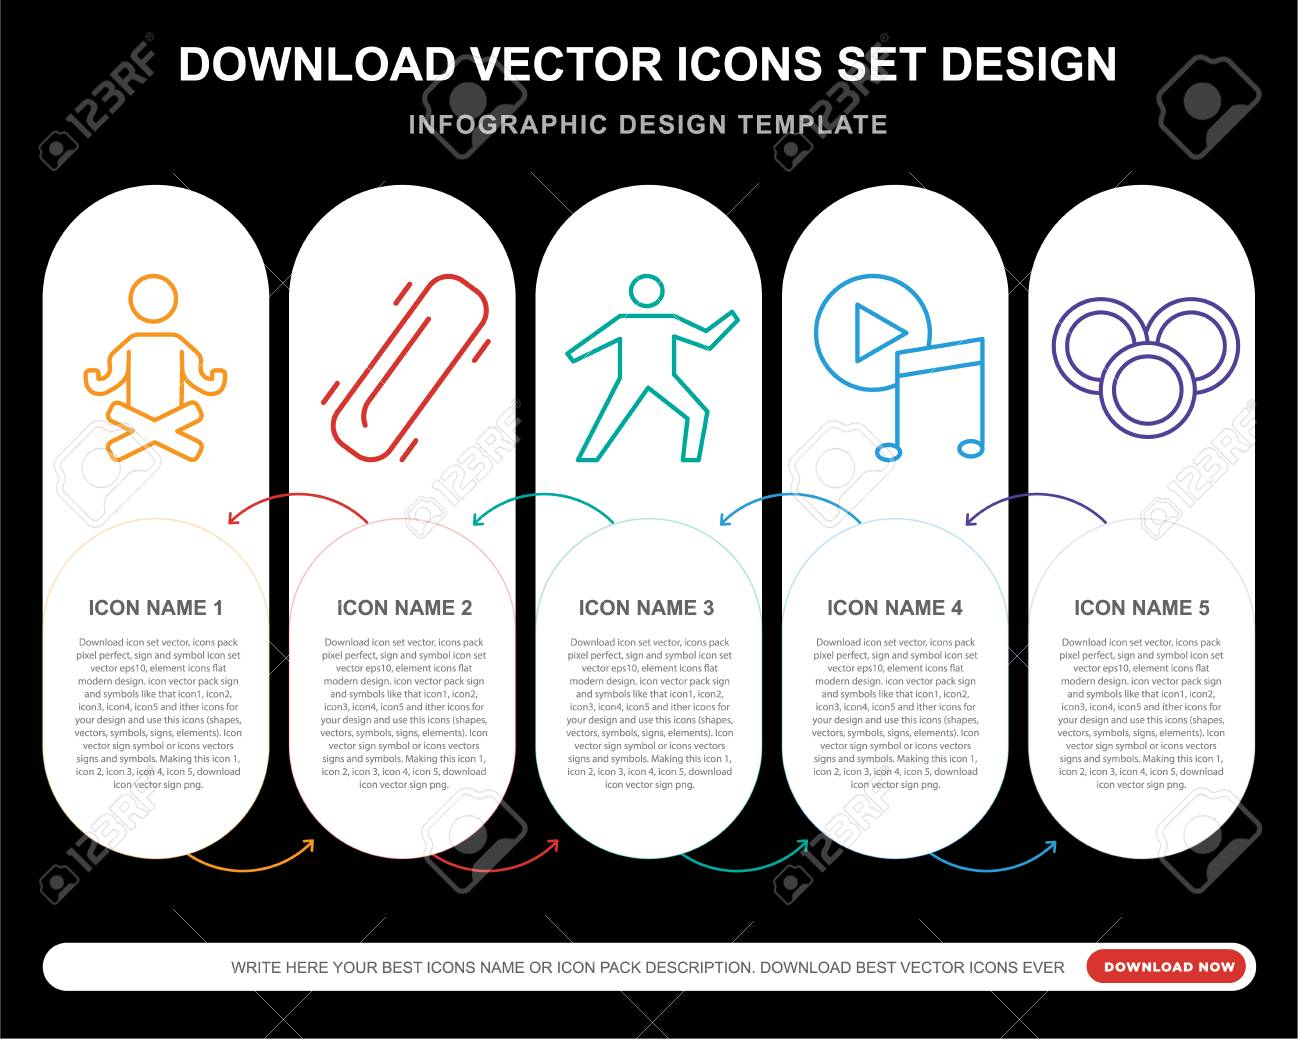 5 vector icons such as Yoga, Skateboard, Music player, Coins